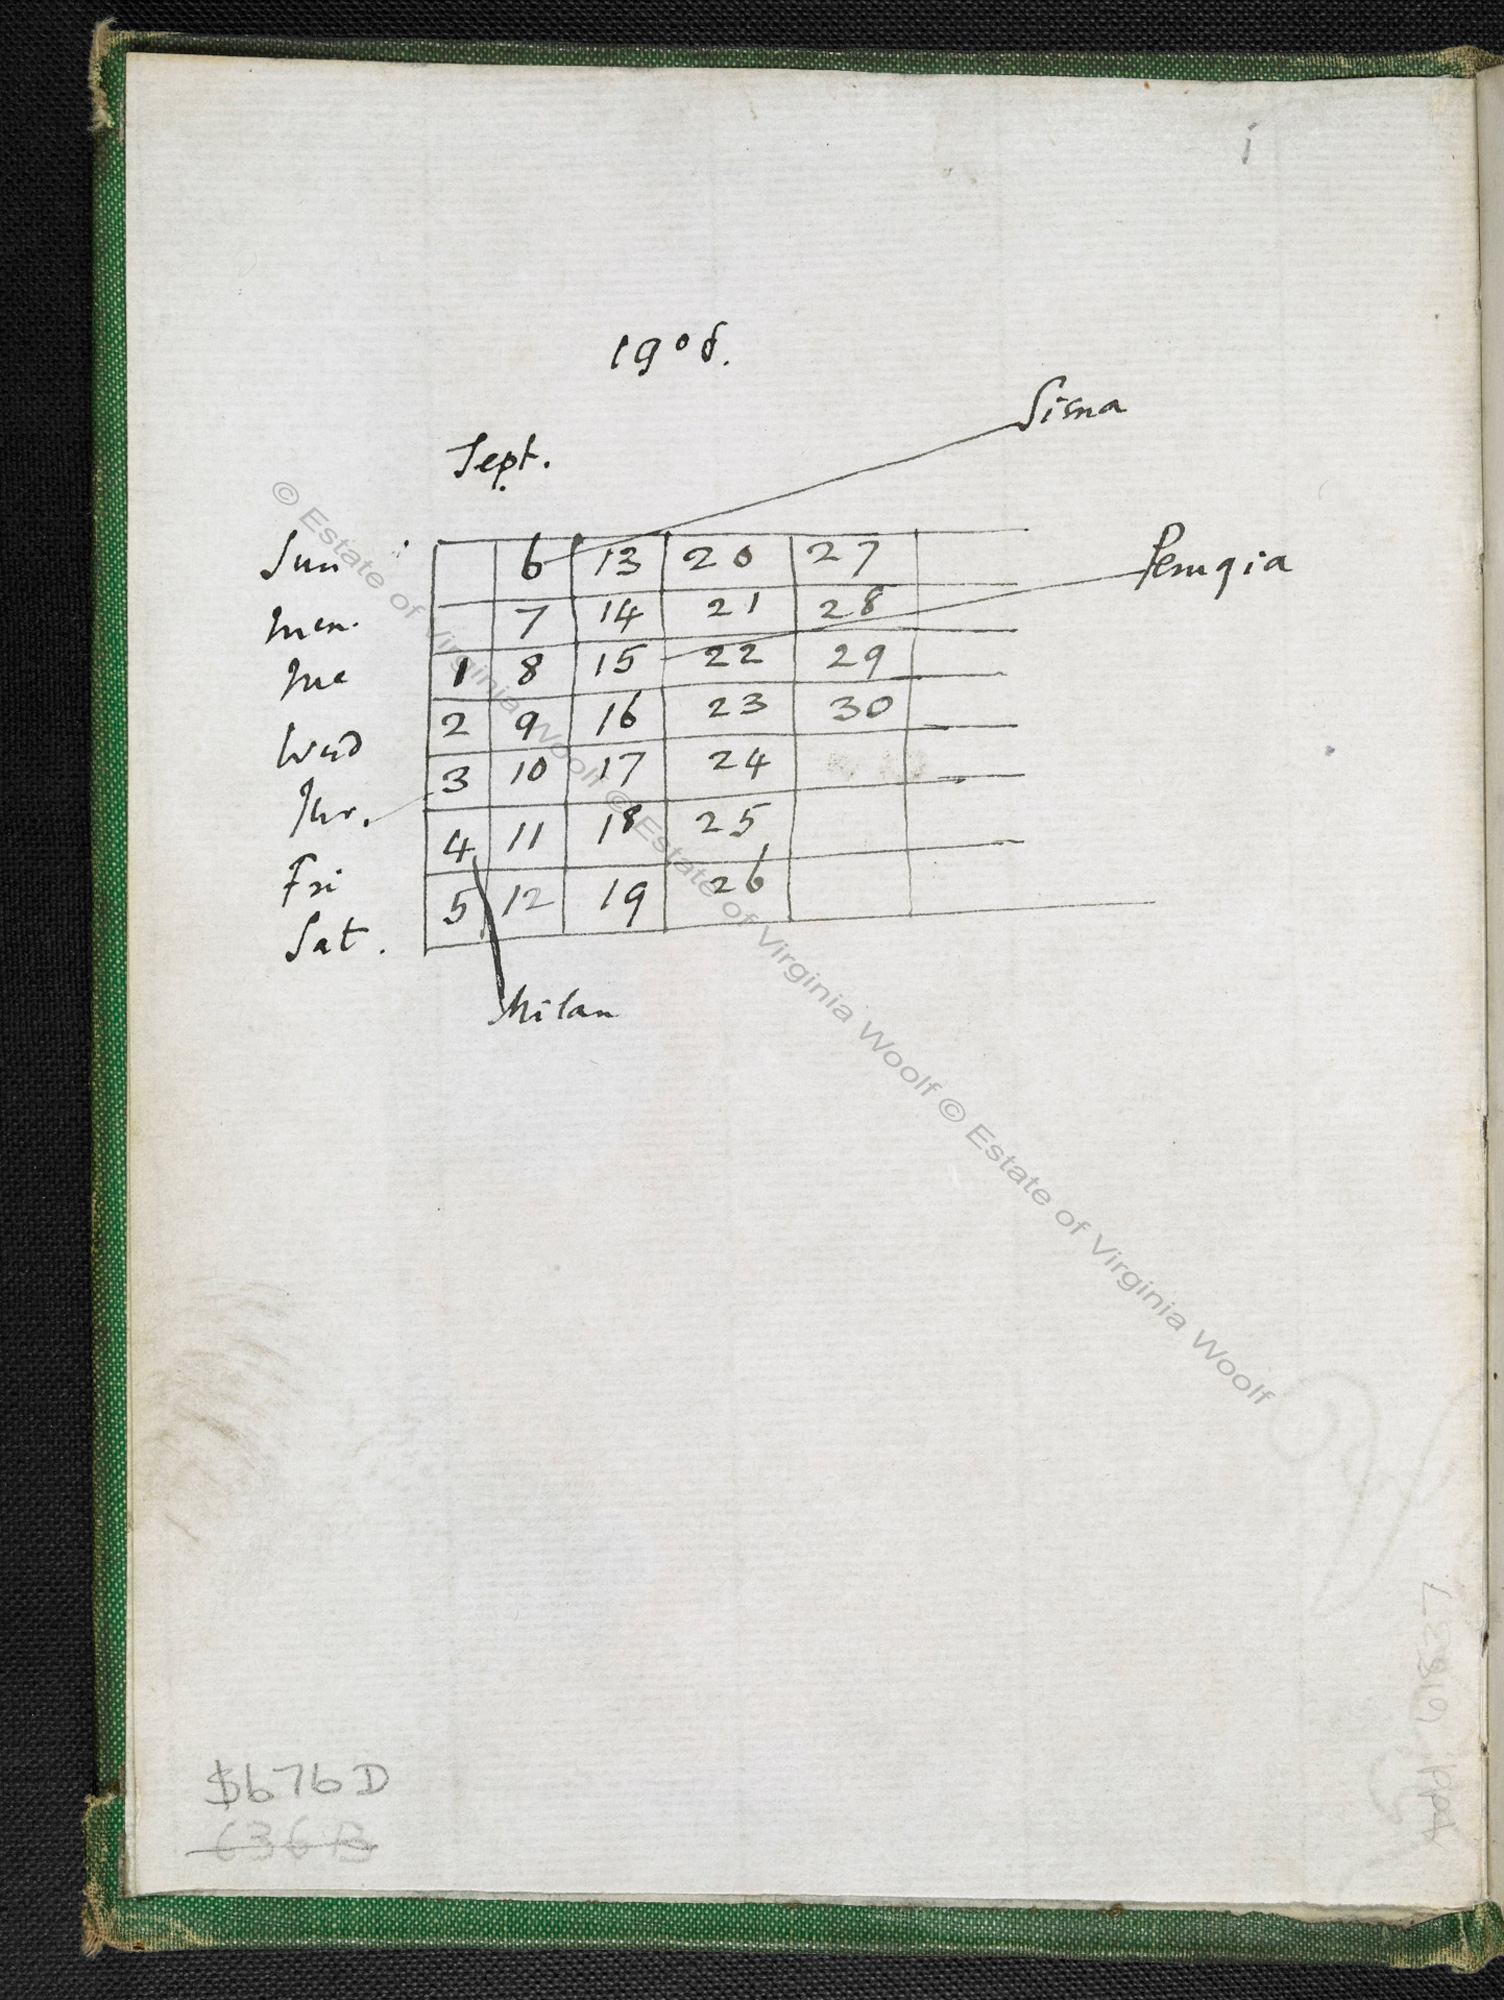 Virginia Woolf's travel and literary notebook, 1906-09